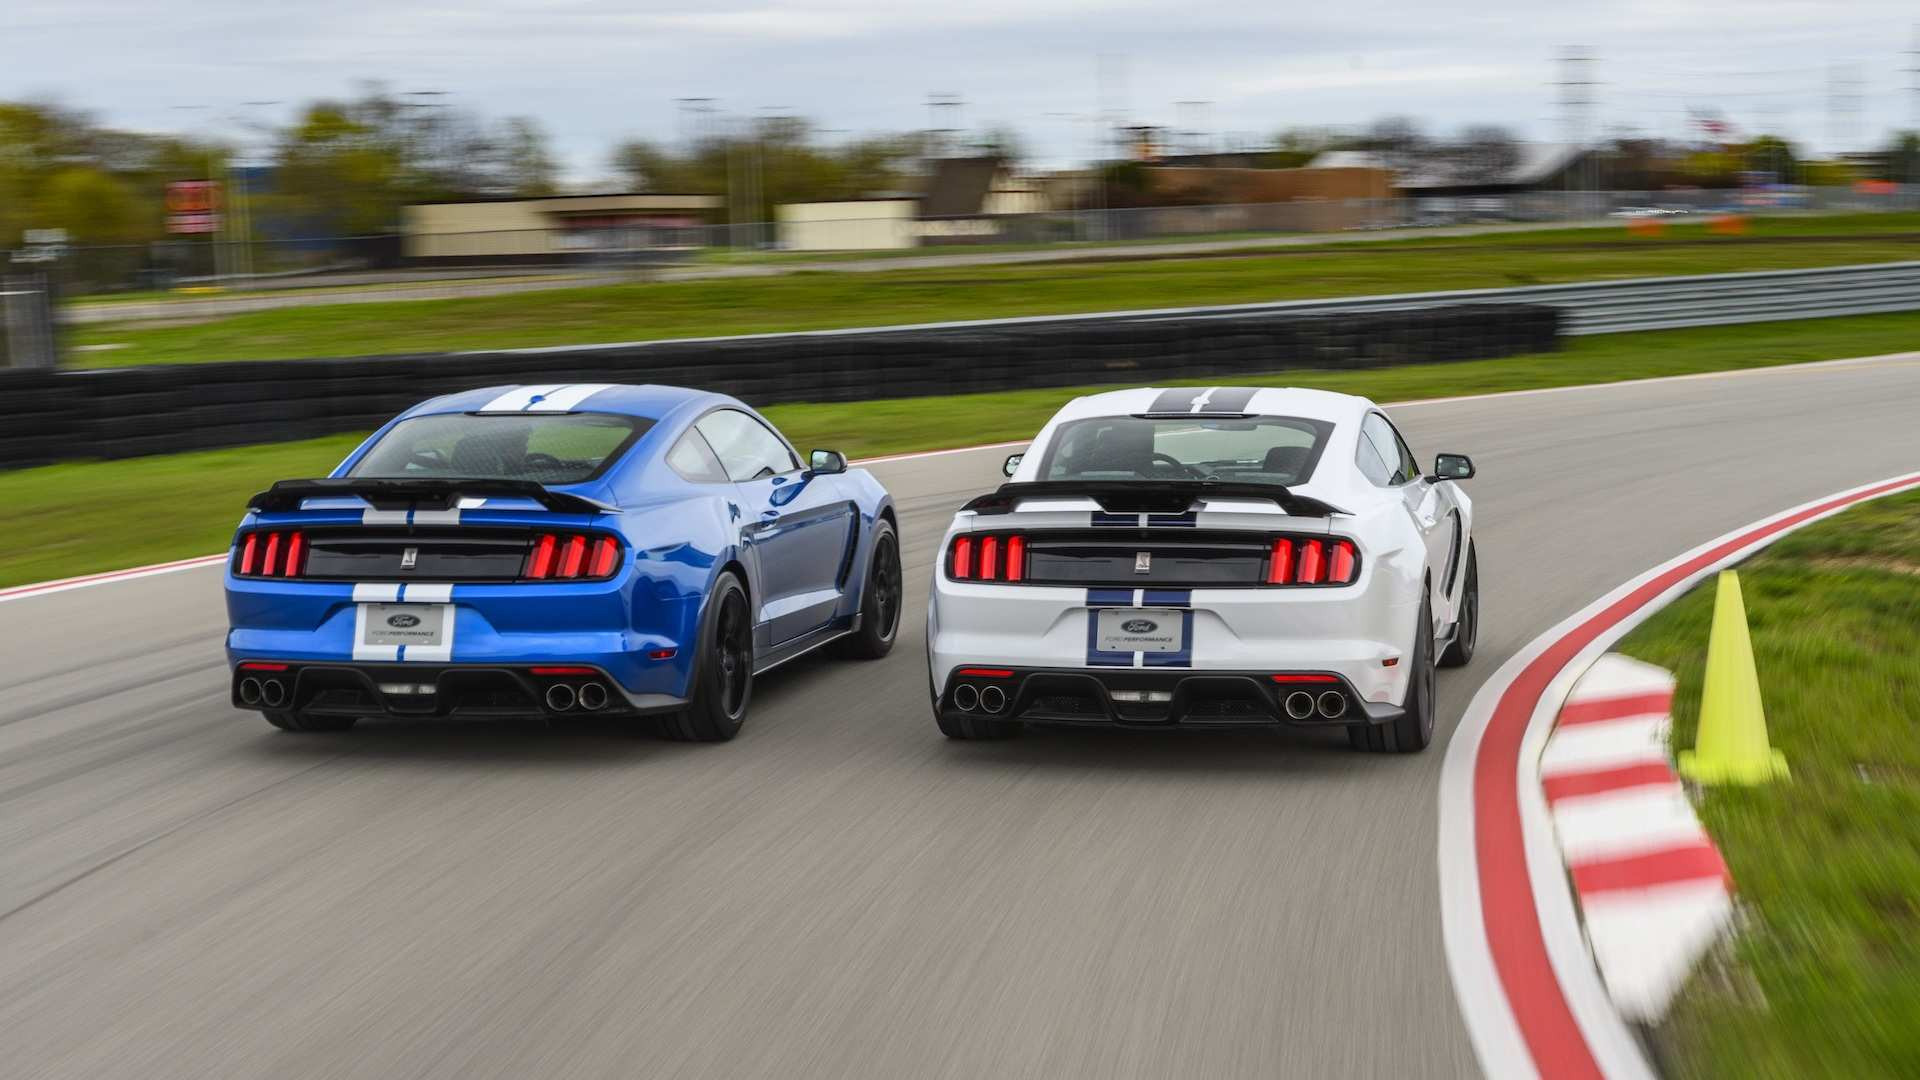 44 The Best 2019 Mustang Shelby Gt350 Price And Release Date